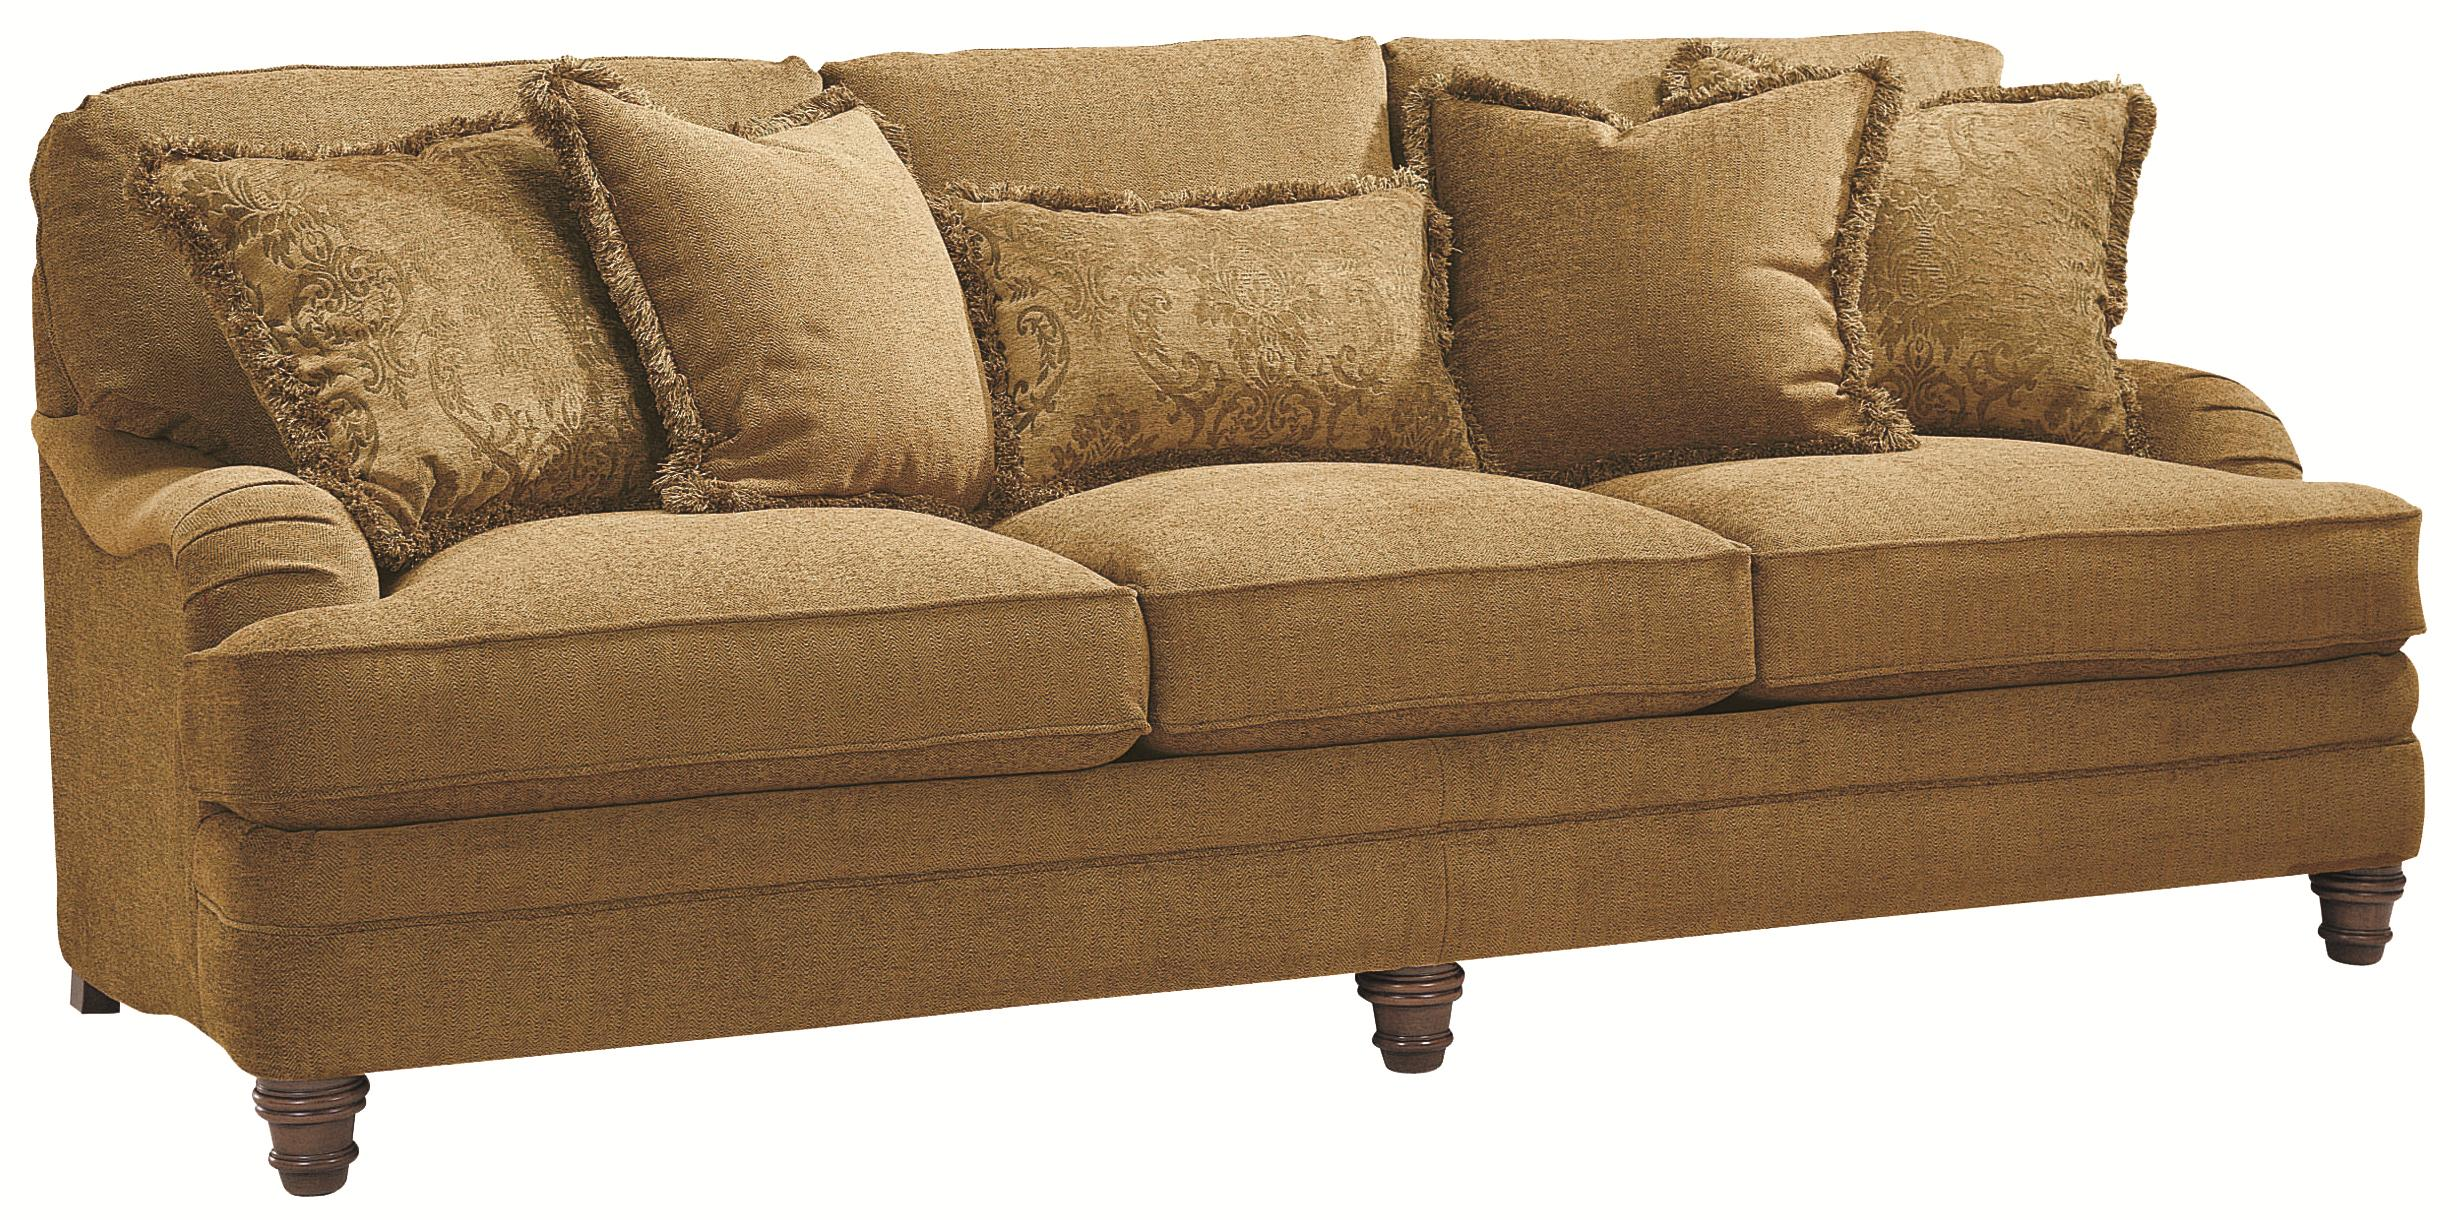 bernhardt sofas clearance baja convert a couch and sofa bed tarleton traditional styled stationary